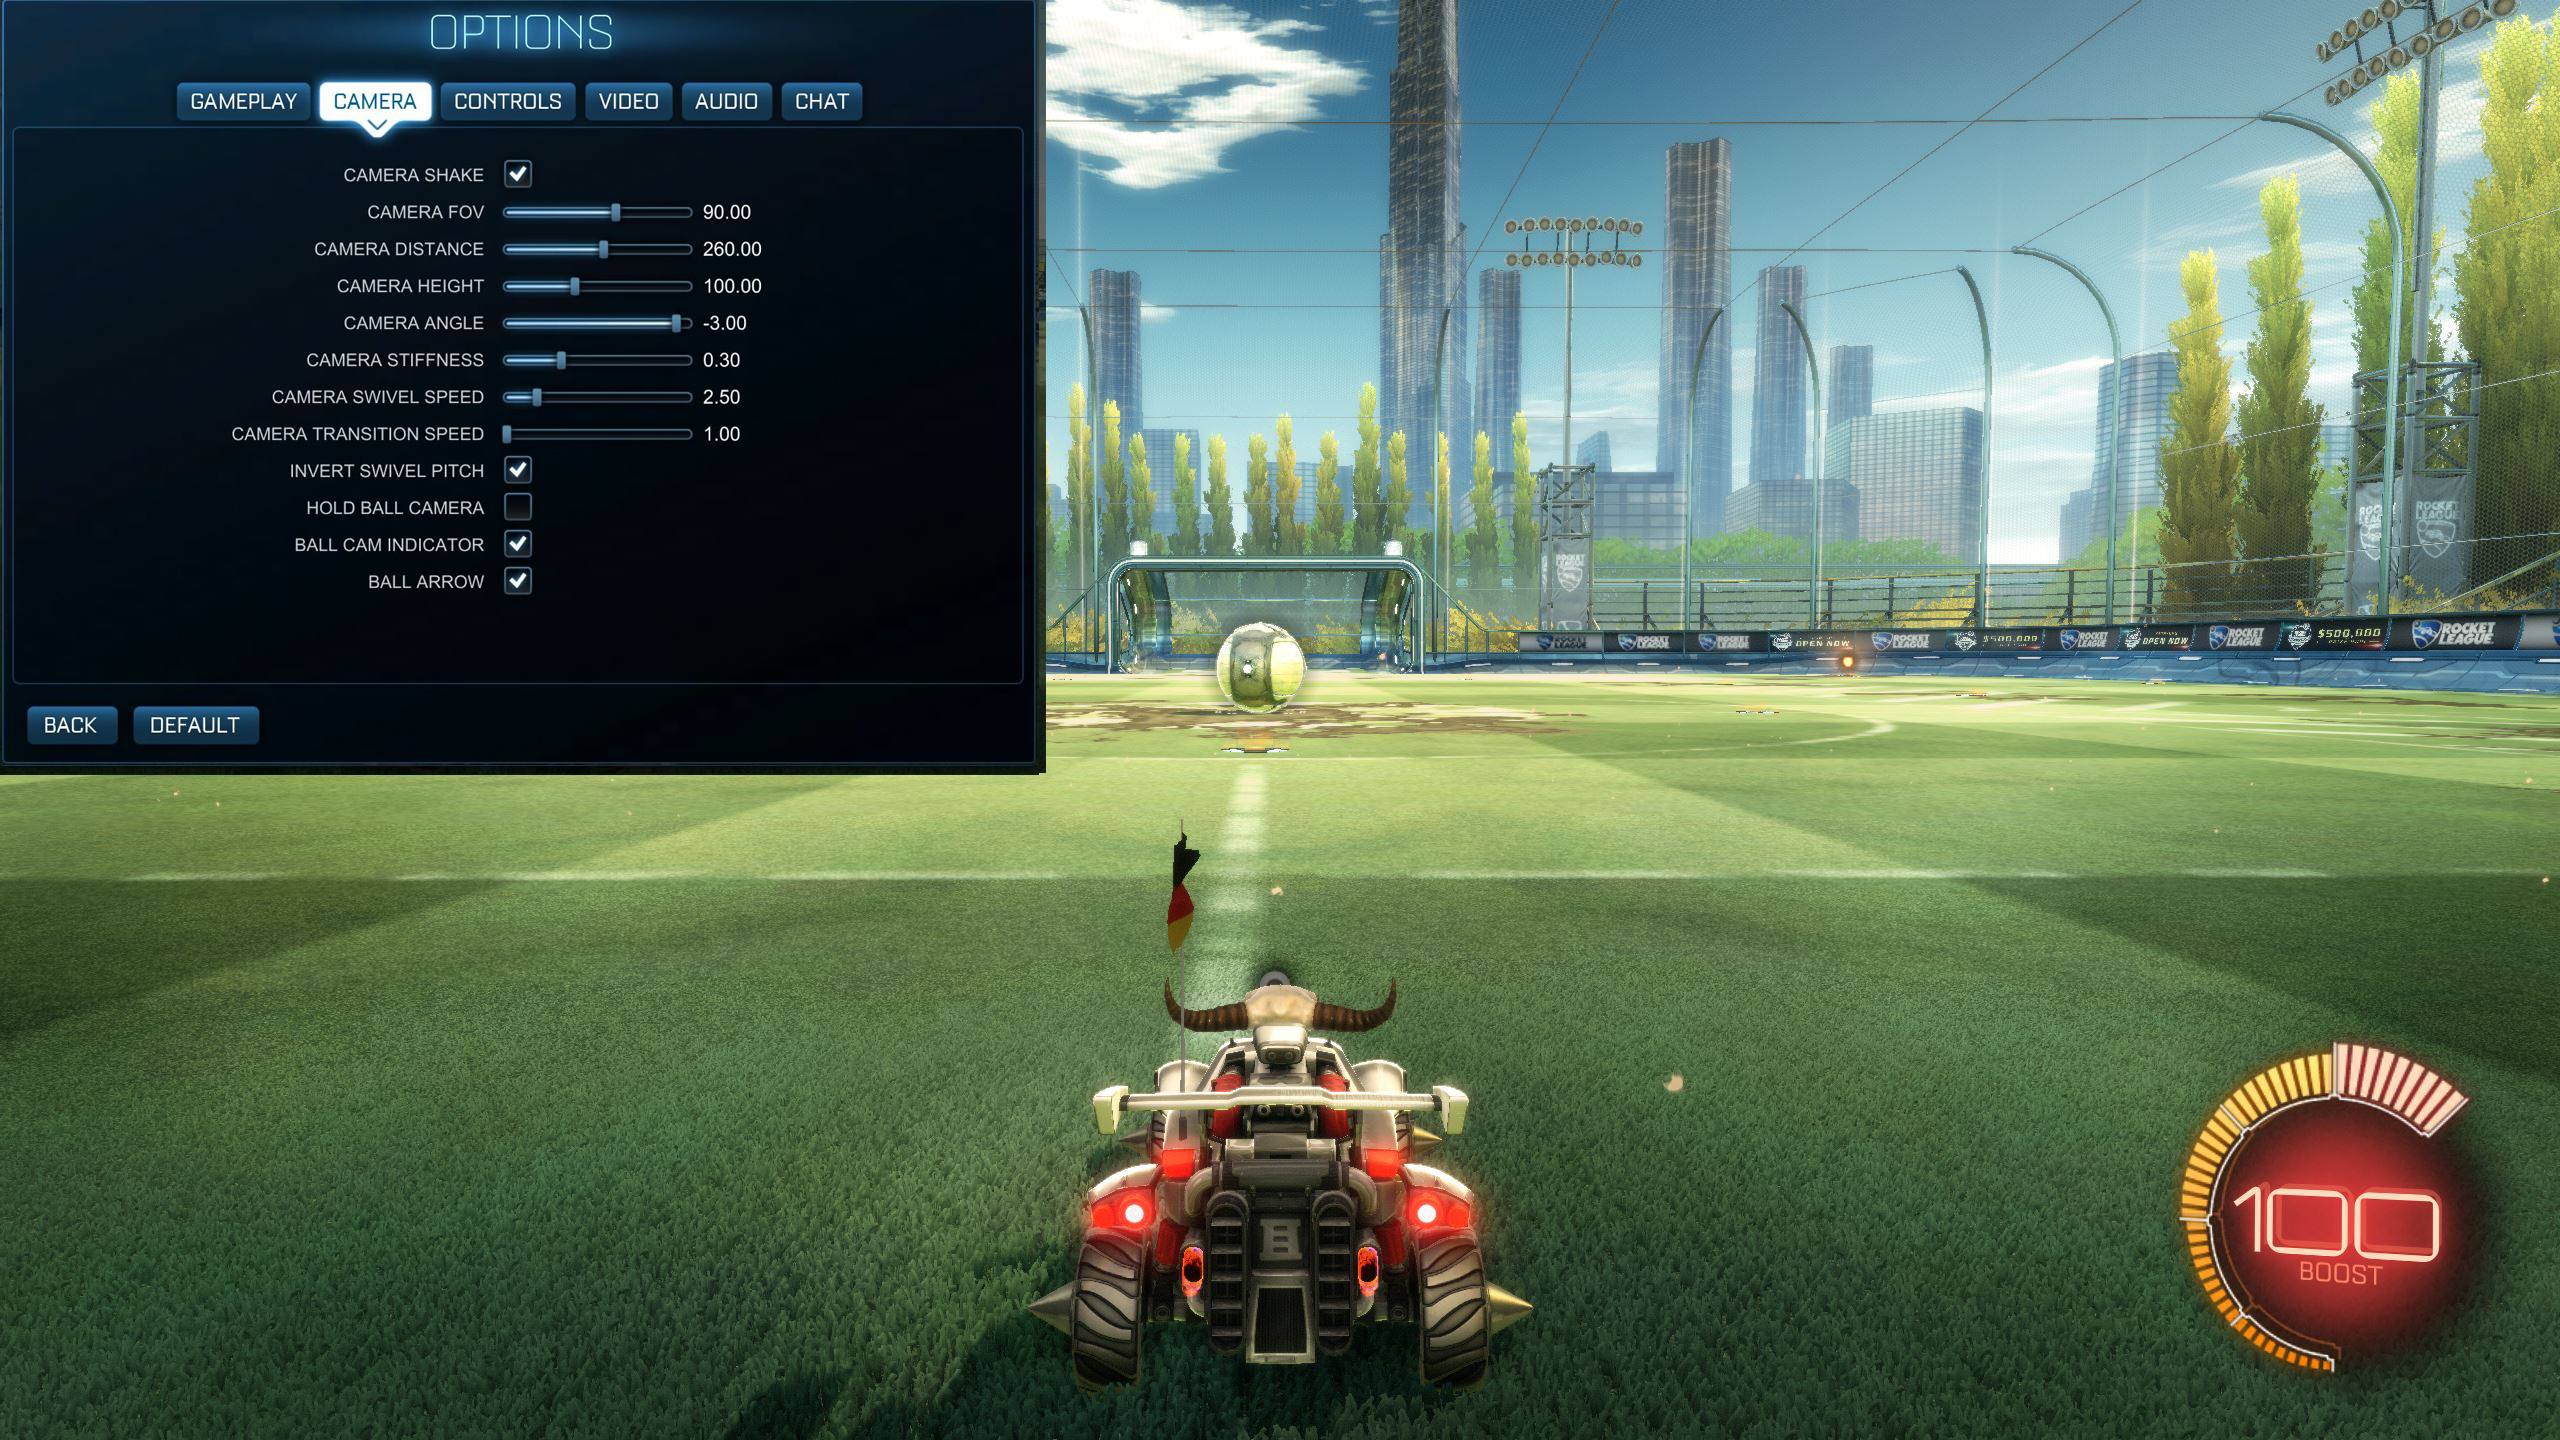 Rocket League Camera Default